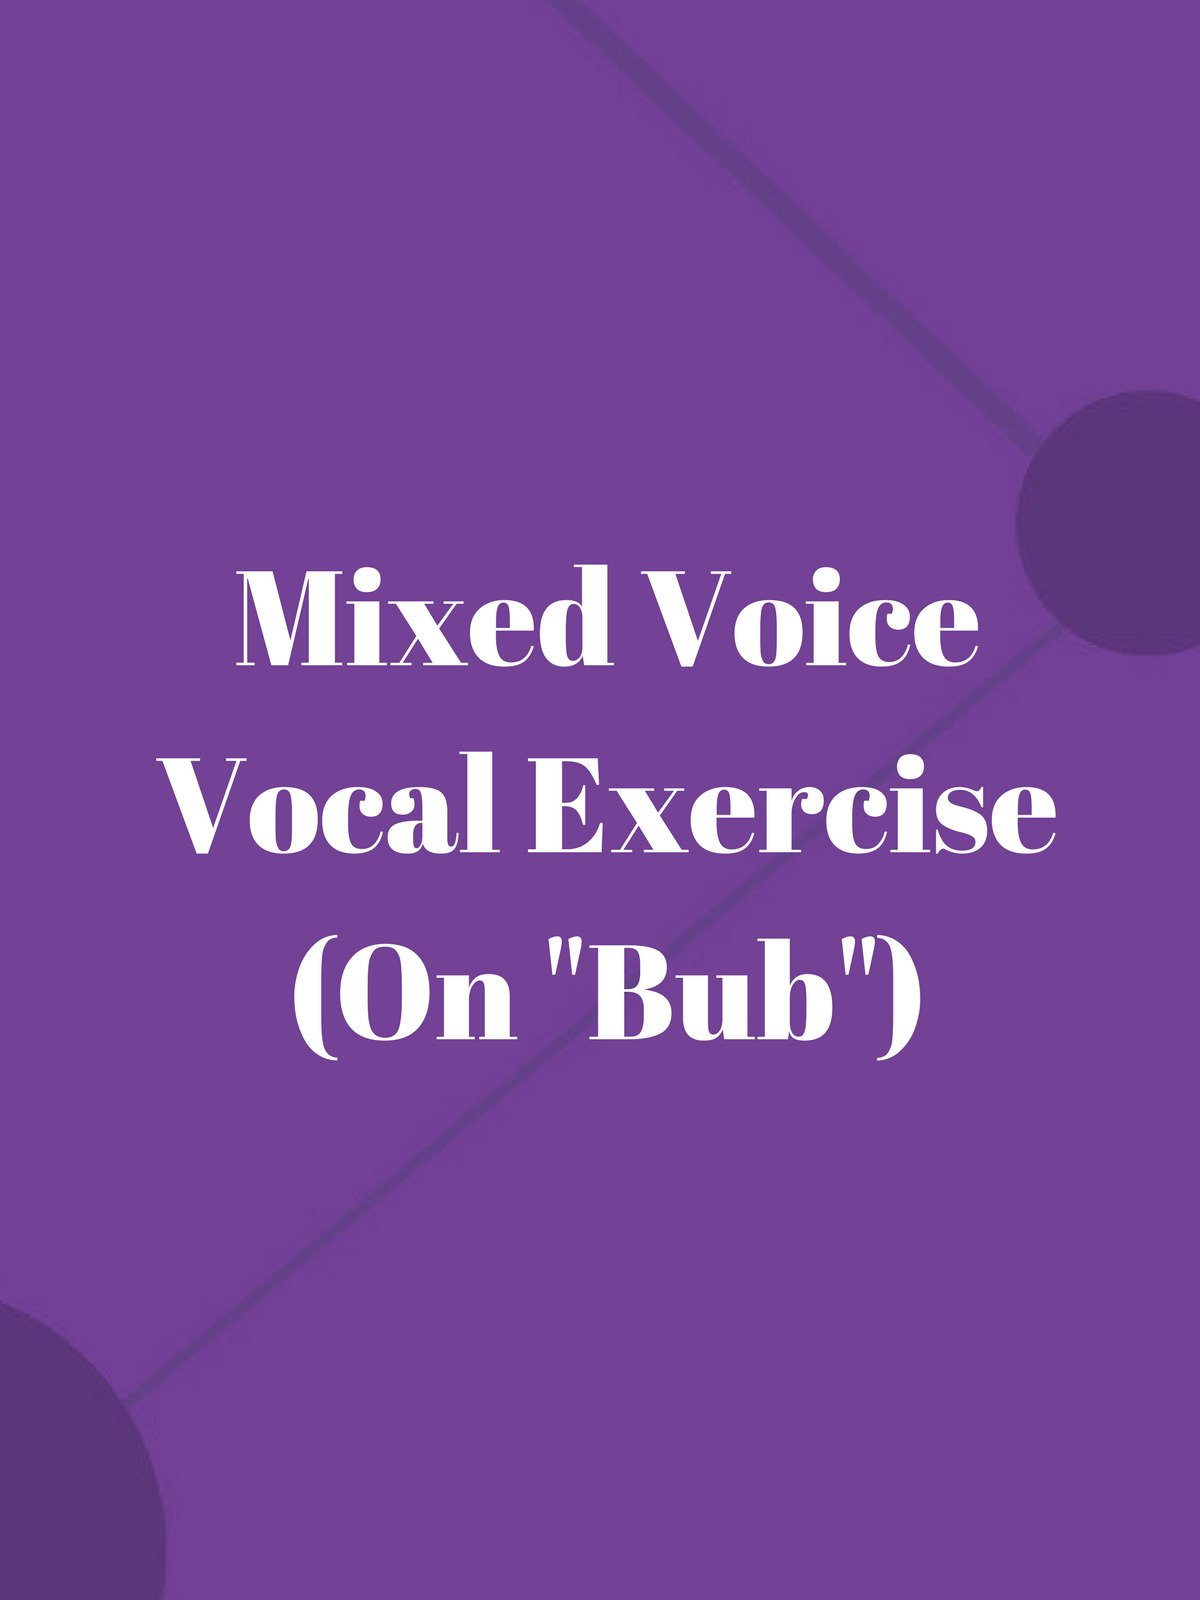 """Mixed Voice Vocal Exercise (On """"Bub"""")"""